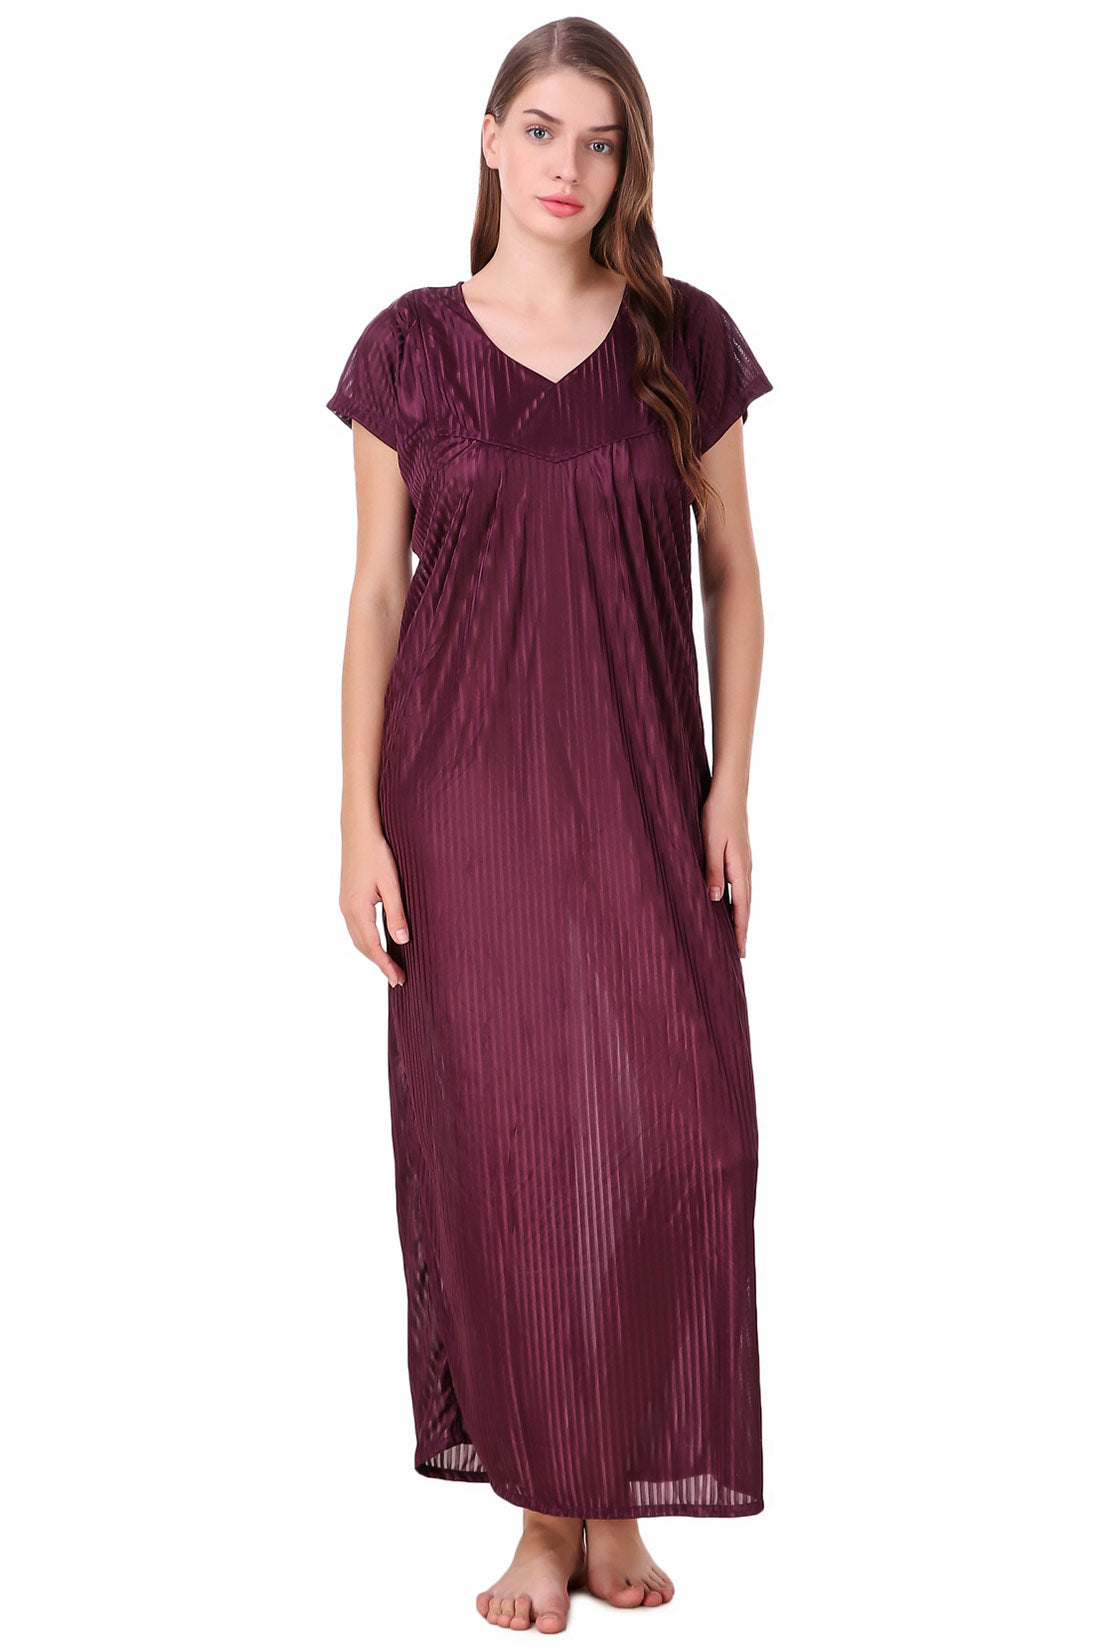 Fasense Women's Satin Nightwear Long Nighty SR021